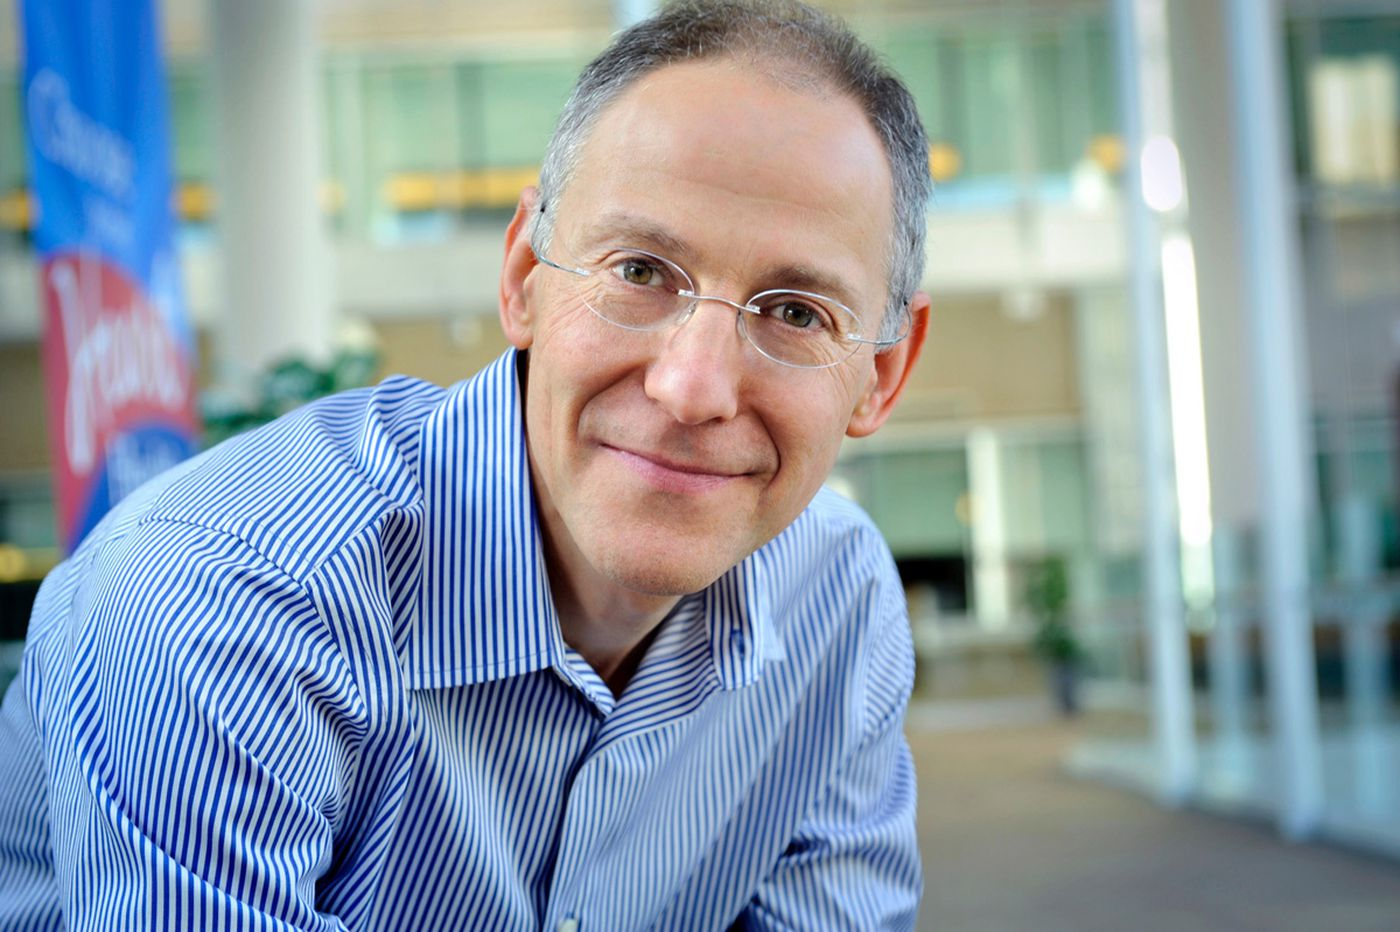 Philly's Dr. Ezekiel Emanuel, member of Biden's COVID task force, lays out how to control the pandemic | Trudy Rubin